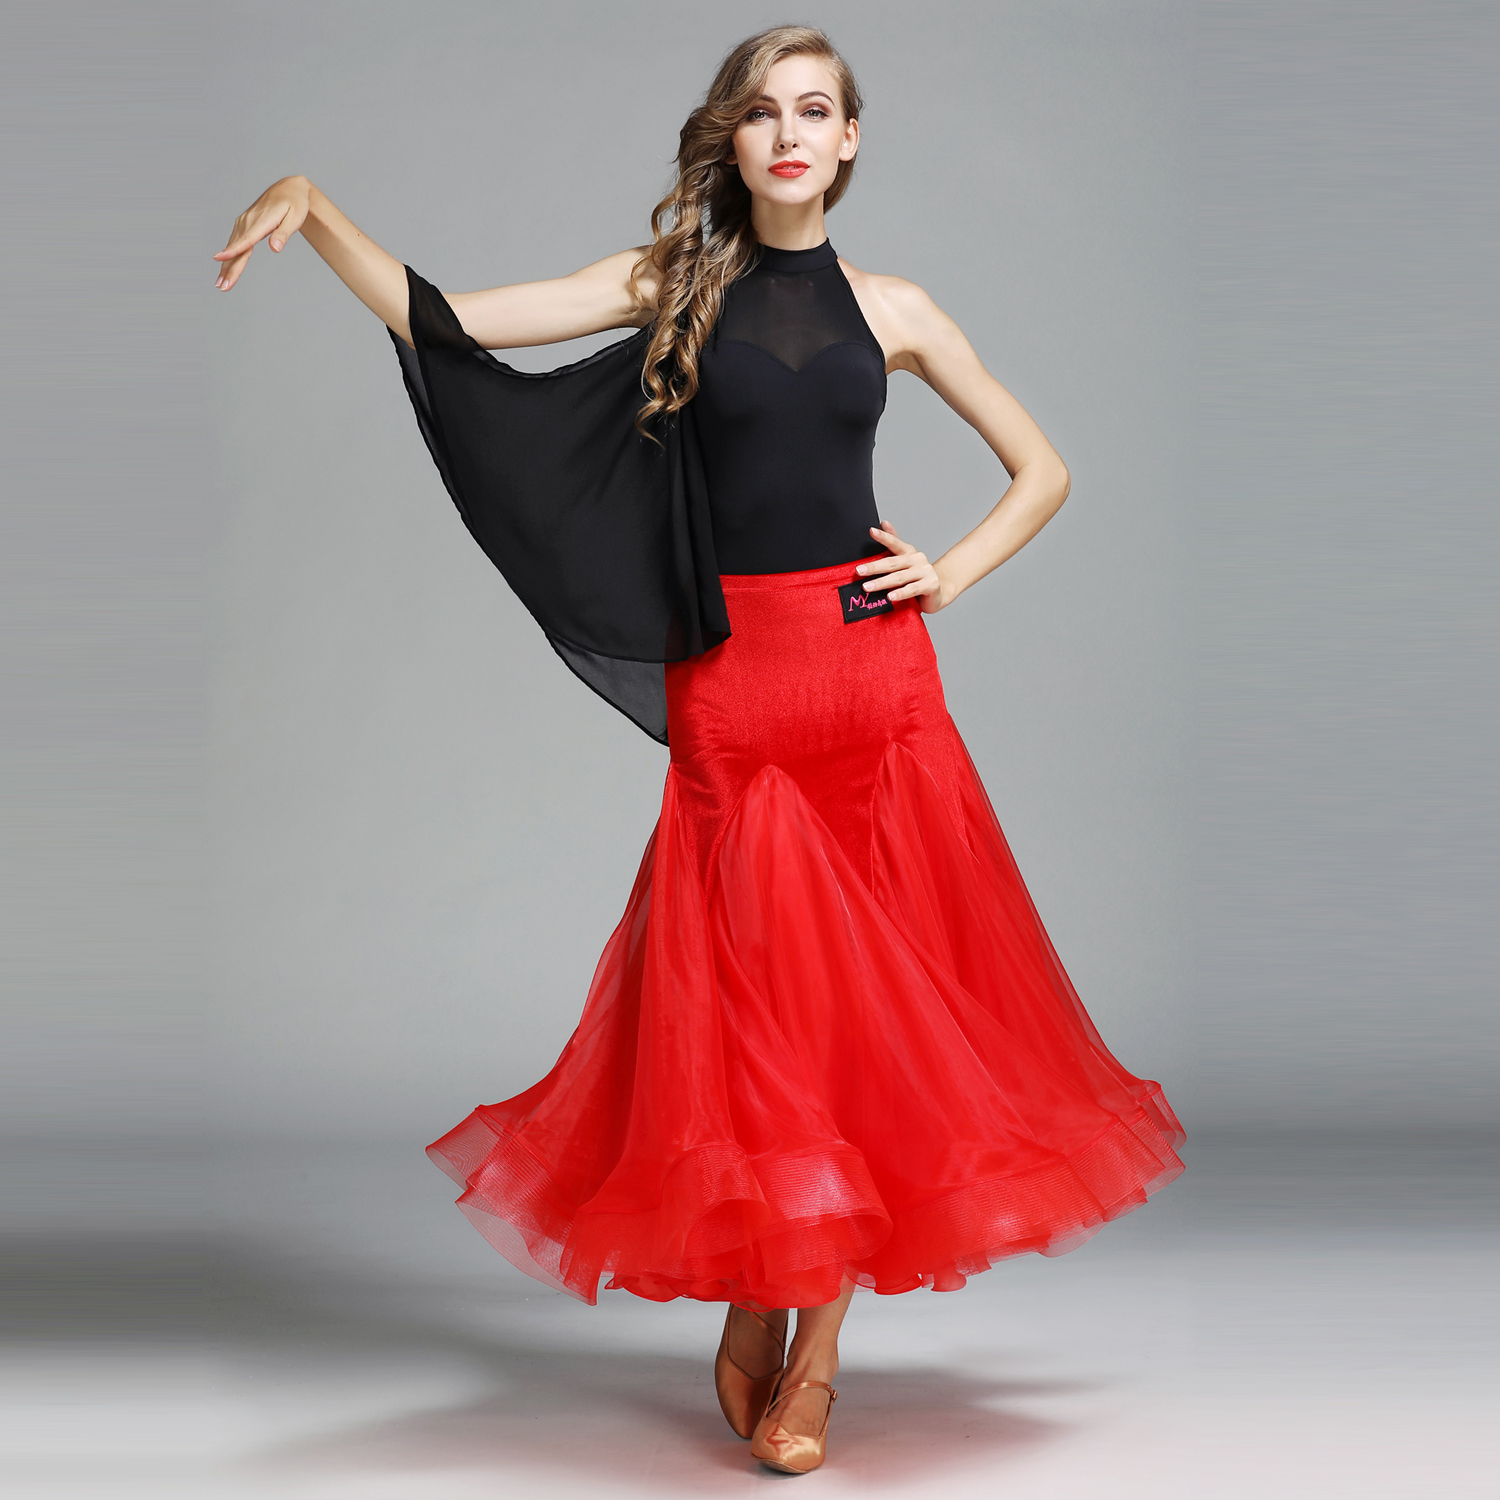 Modern Dance Costume Top and Skirt Suits Women Lady Adult Dance Dress Ballroom Costume Practice Clothes Evening Party Dress